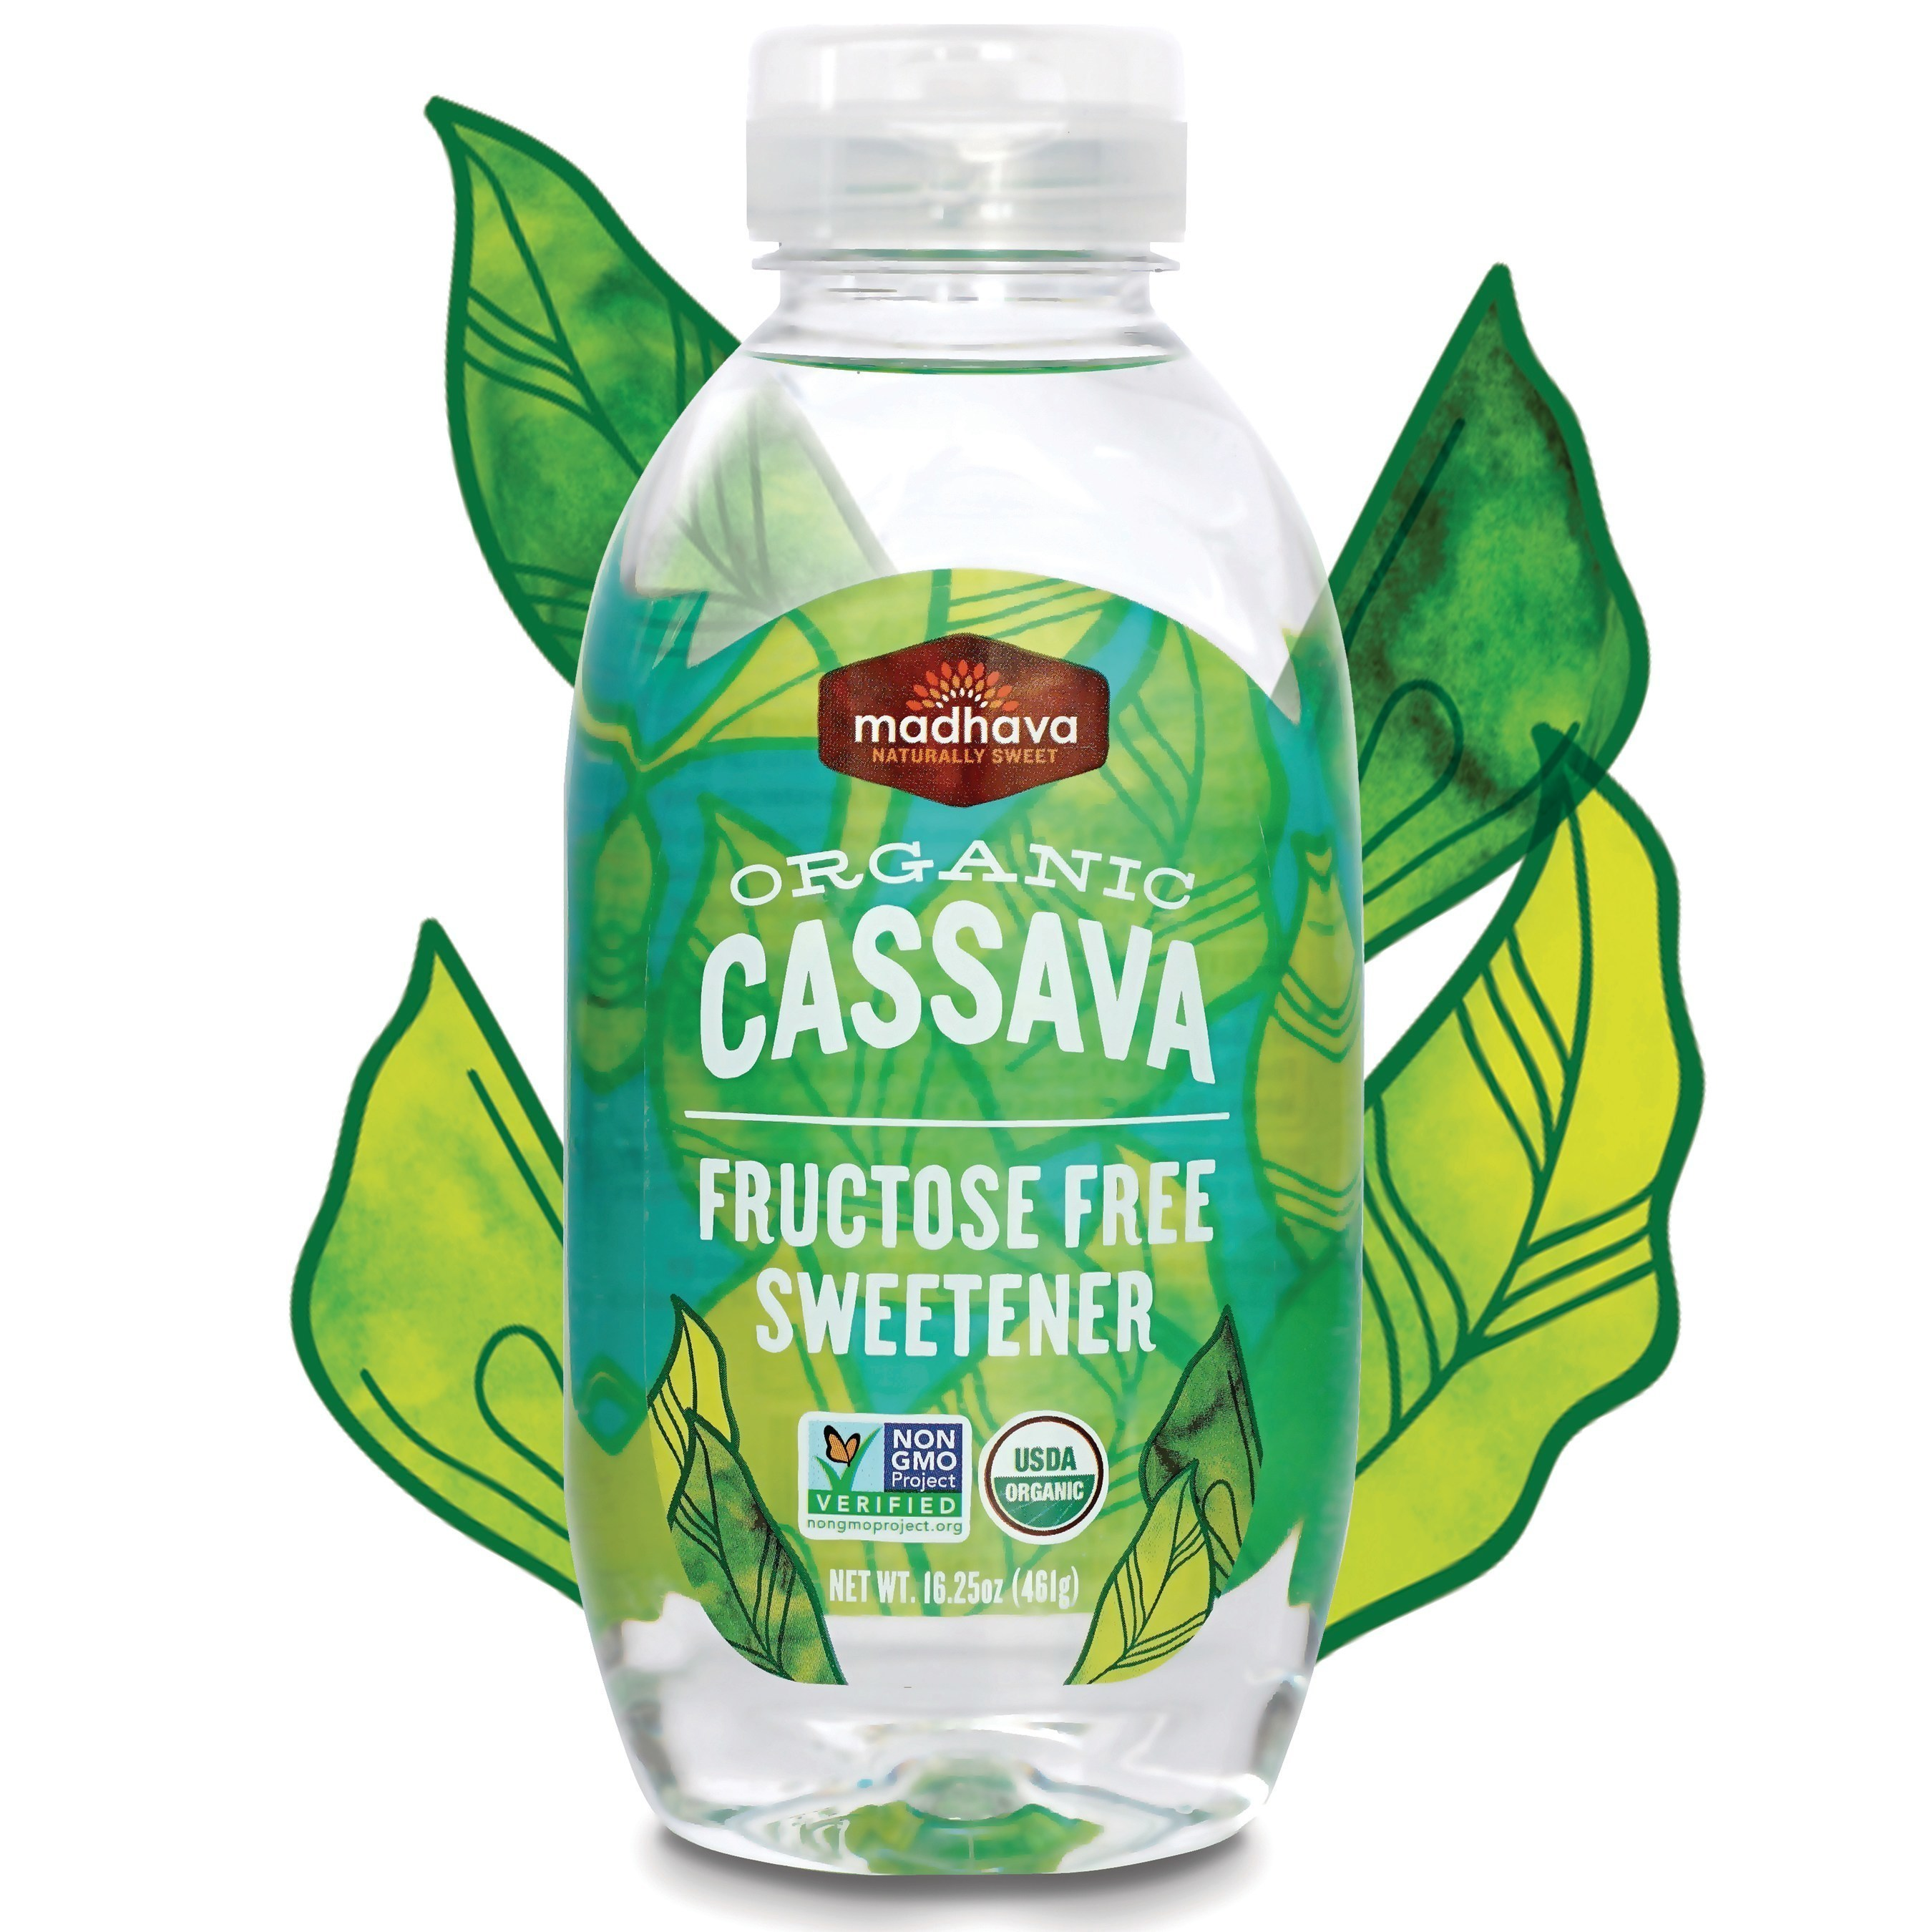 Madhava's Organic Cassava is a fructose free sweetener made from the root of the cassava plant and adds natural sweetness to your favorite foods and beverages.